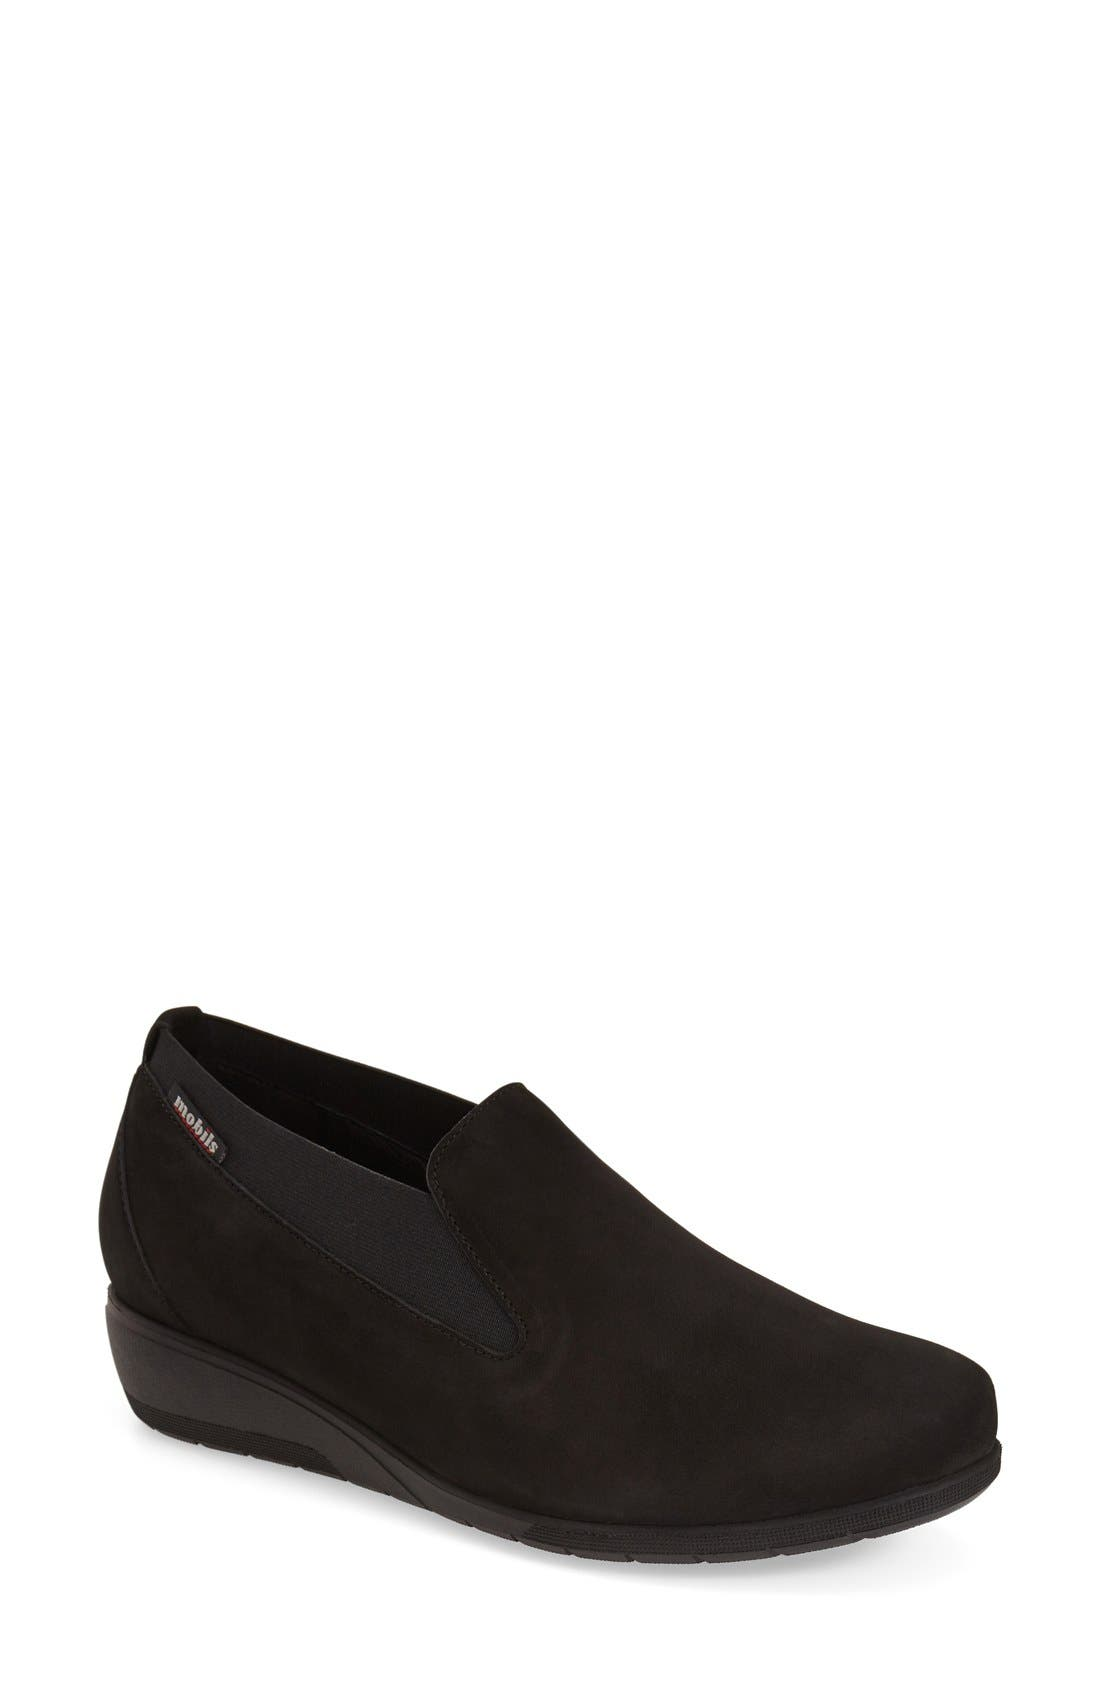 Mephisto 'Jerrie' Slip-On Wedge (Women)